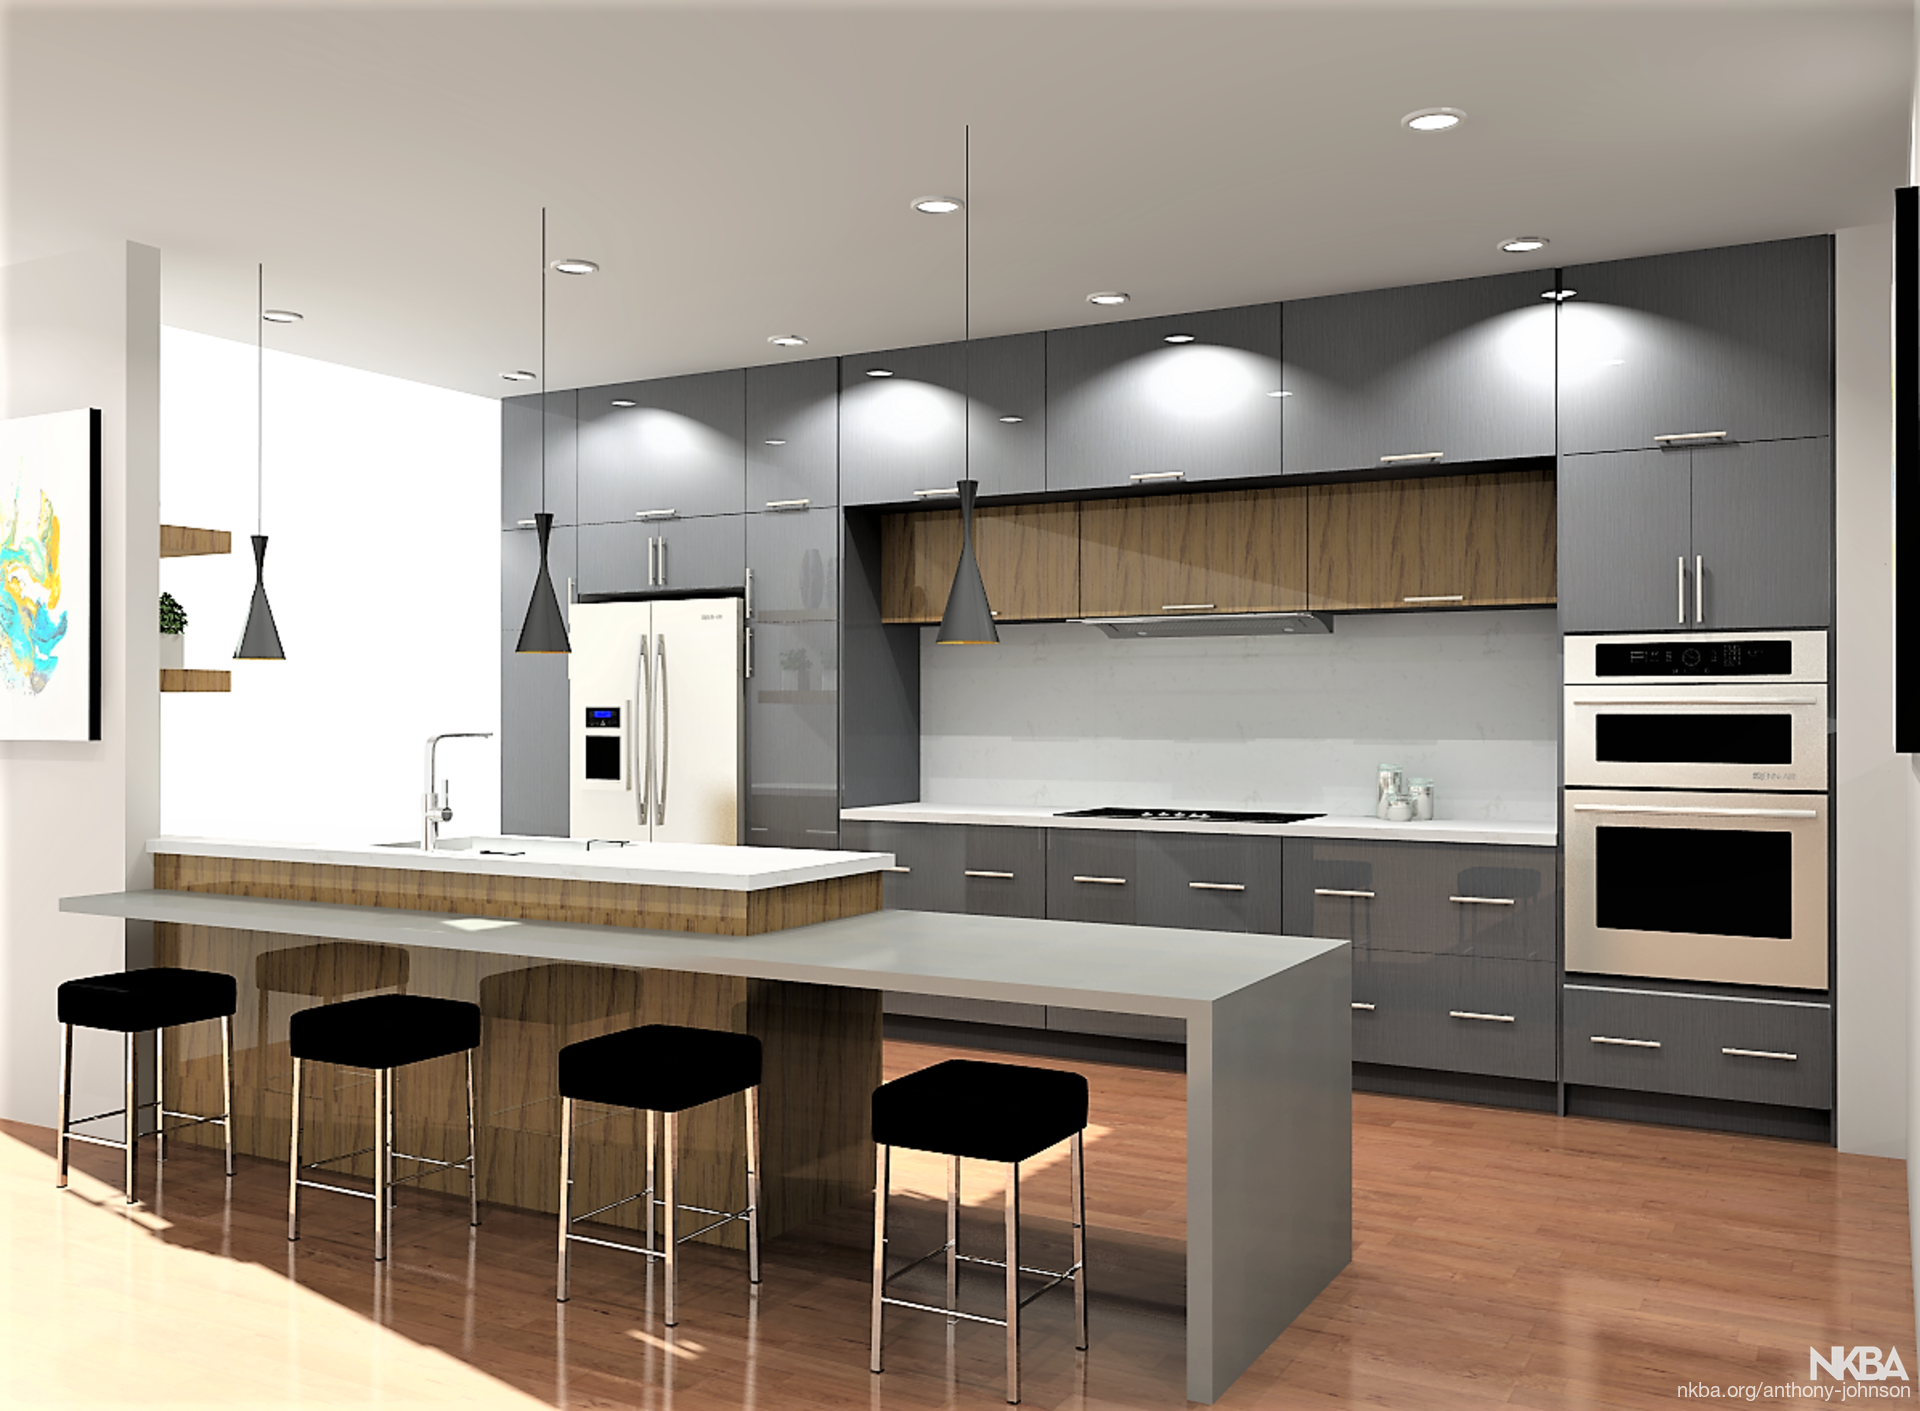 Modern Kitchen Design (Hollywood) - NKBA on Modern Kitchen Design  id=47585